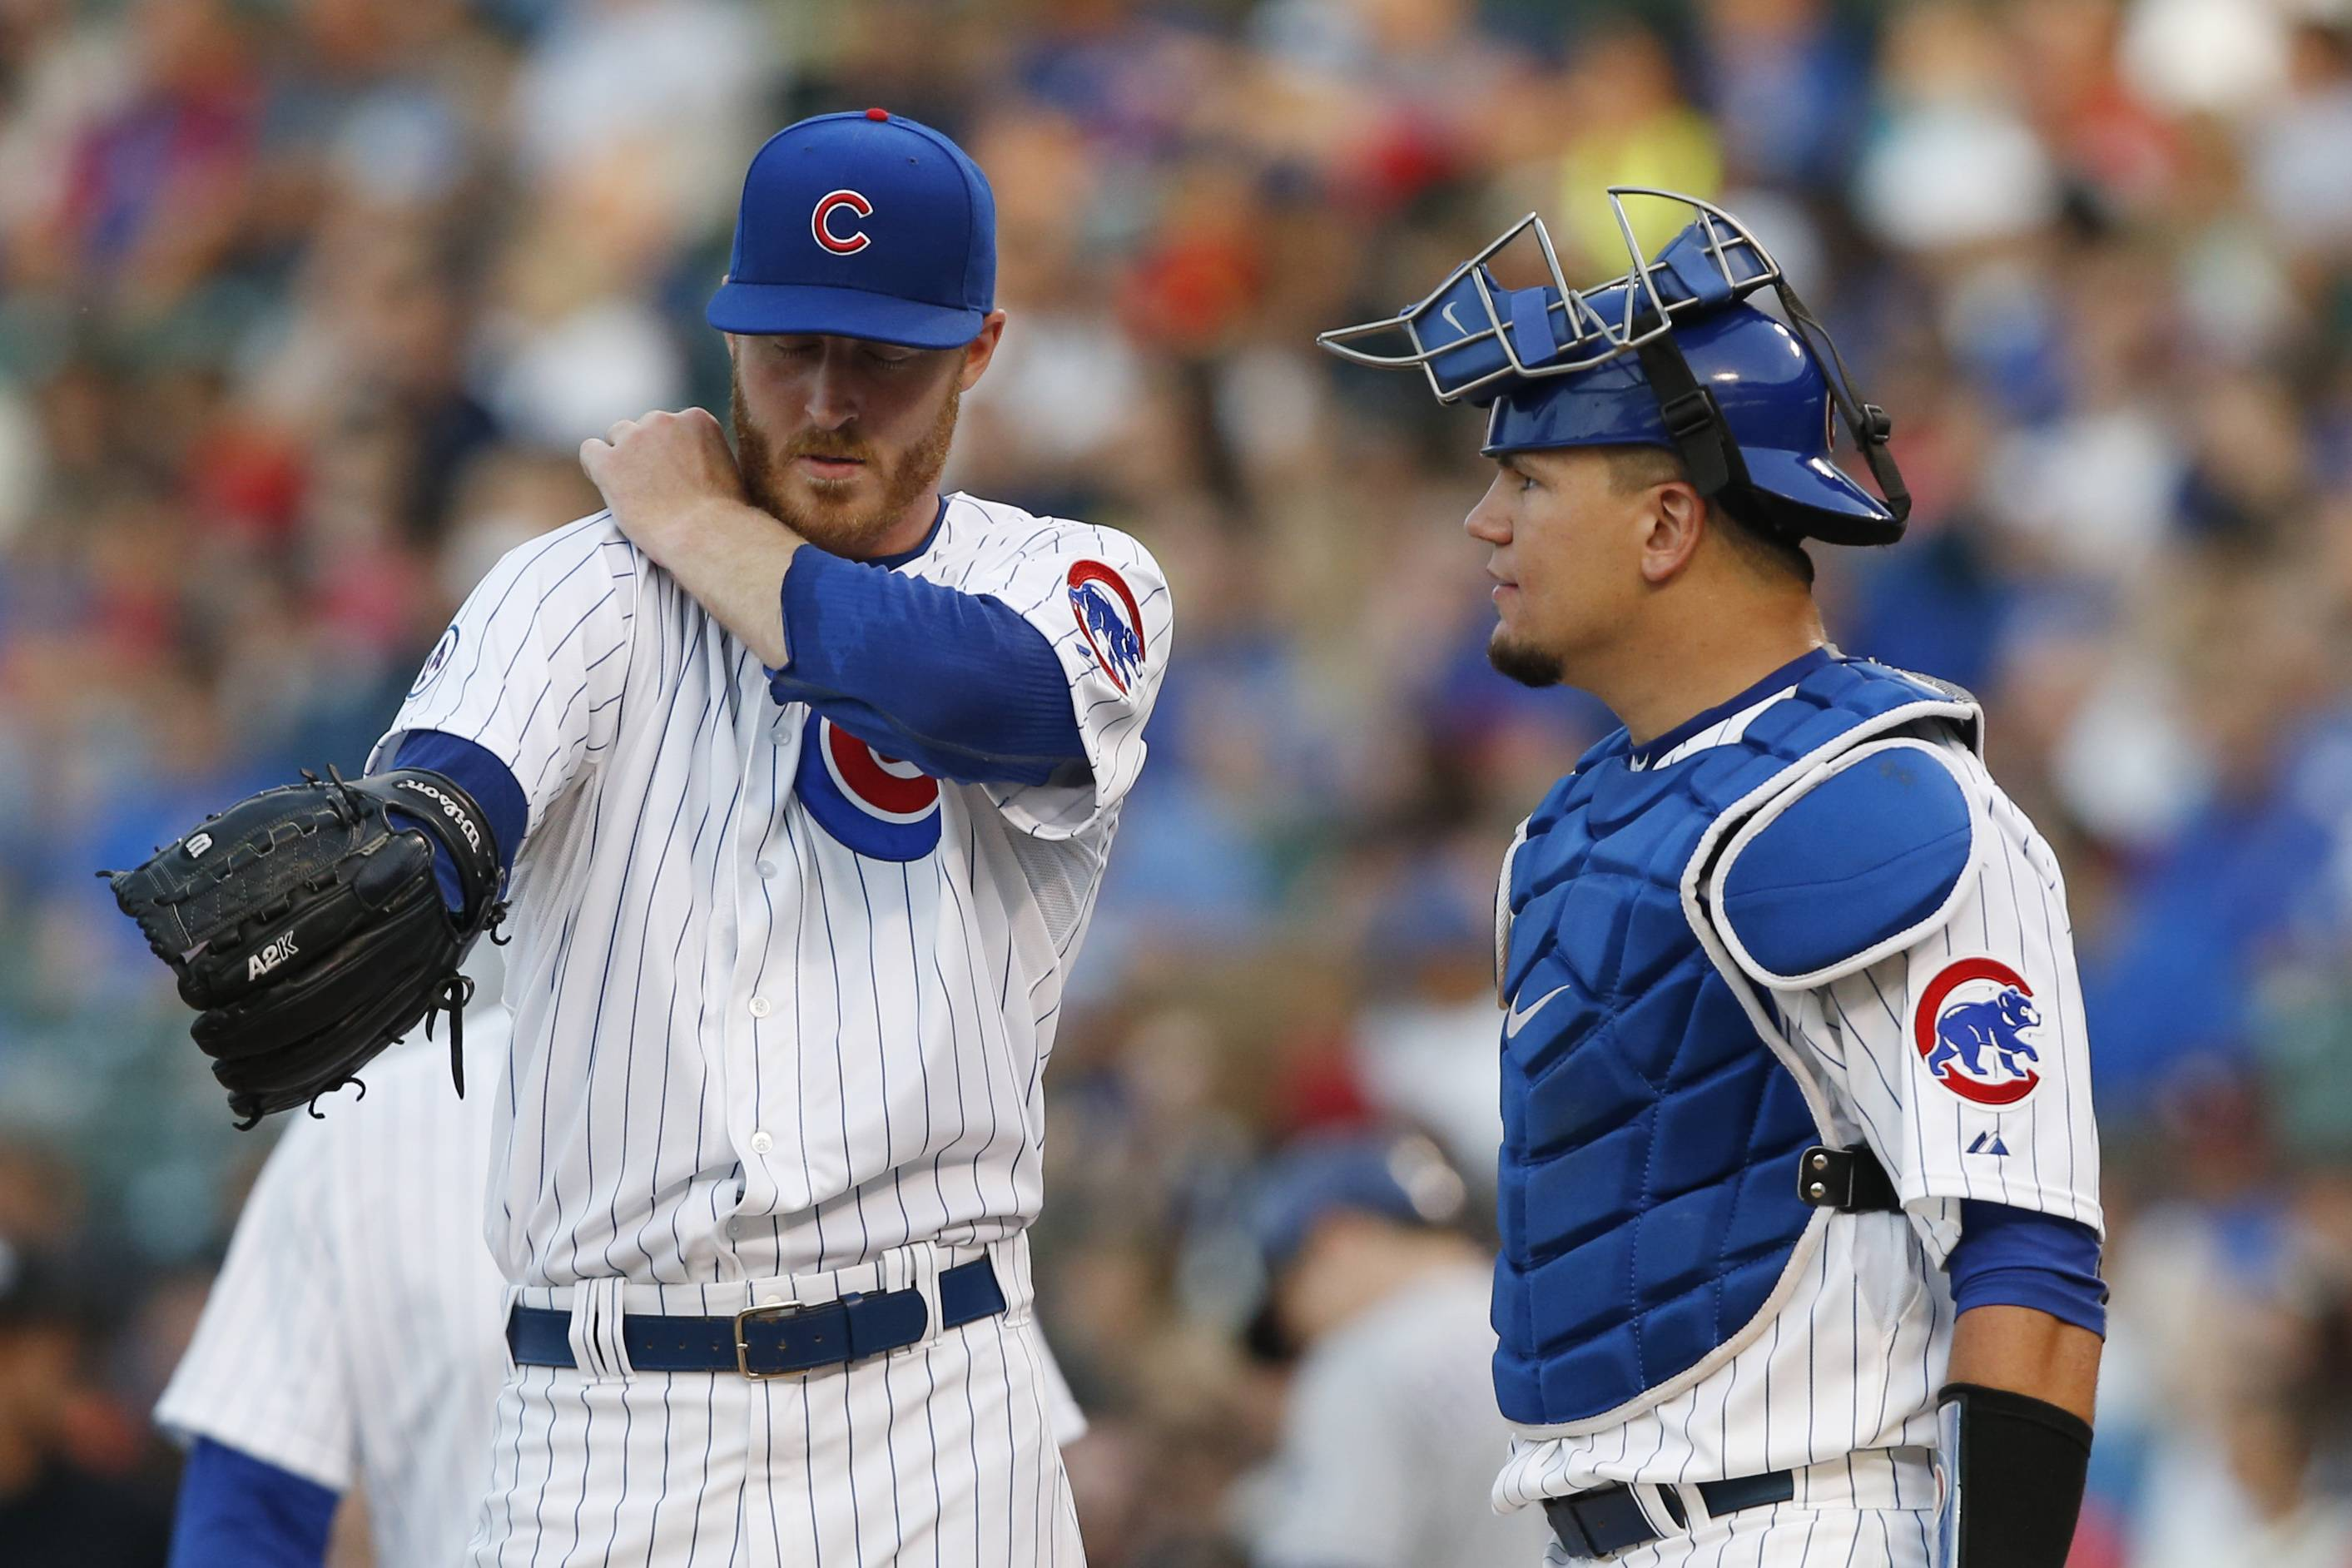 Chicago Cubs starting pitcher Dallas Beeler and catcher Kyle Schwarber confer during the first inning of a baseball game against the Colorado Rockies in Chicago, Tuesday, July 28, 2015.